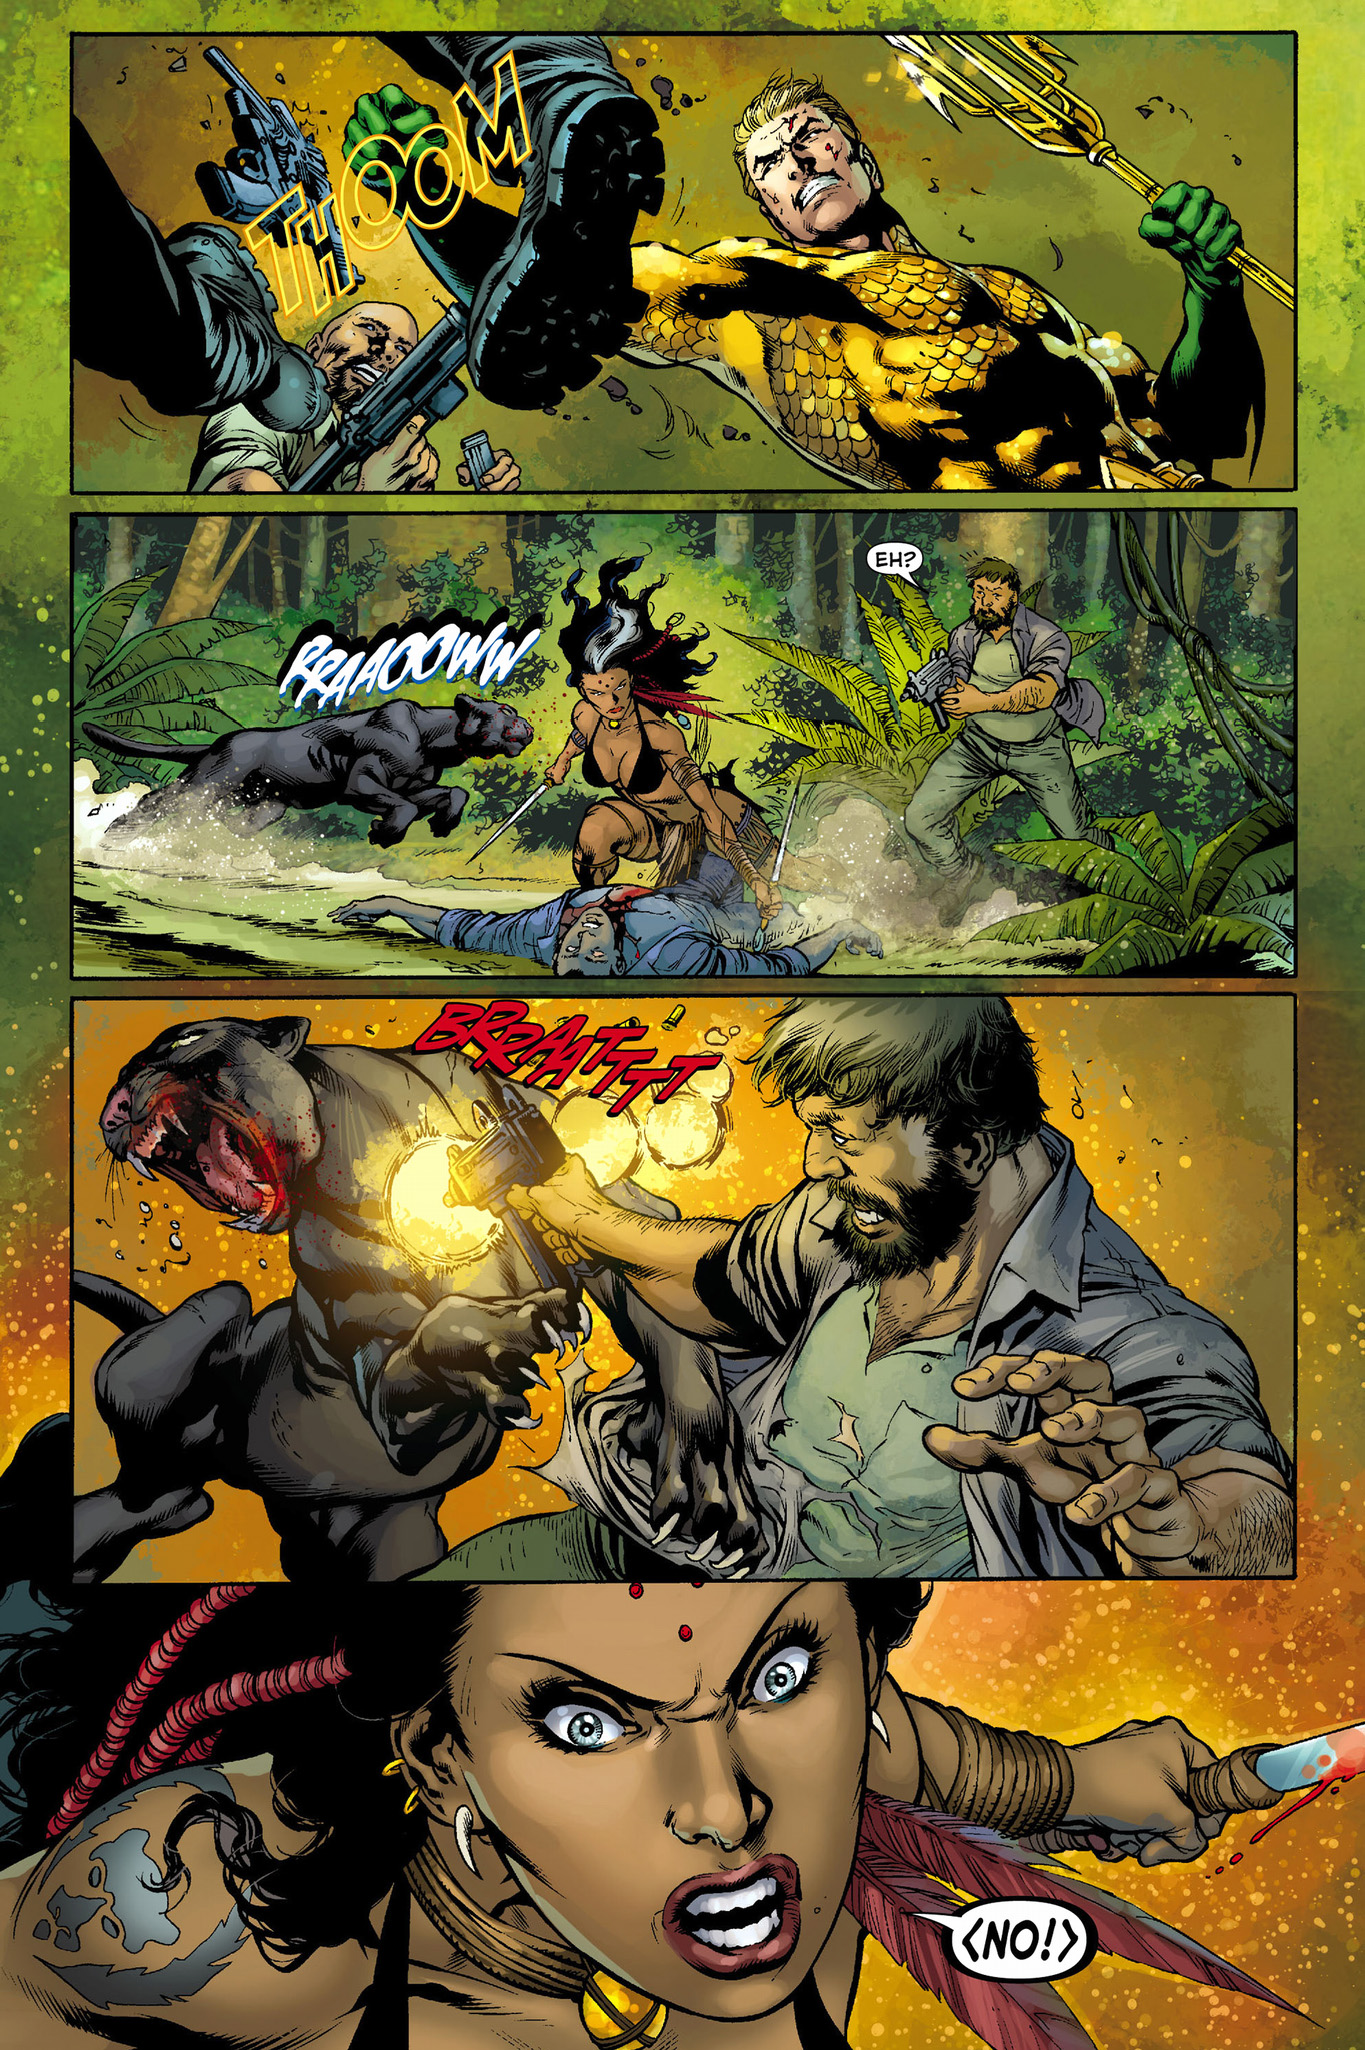 aquaman and ya'wara vs black manta's thugs